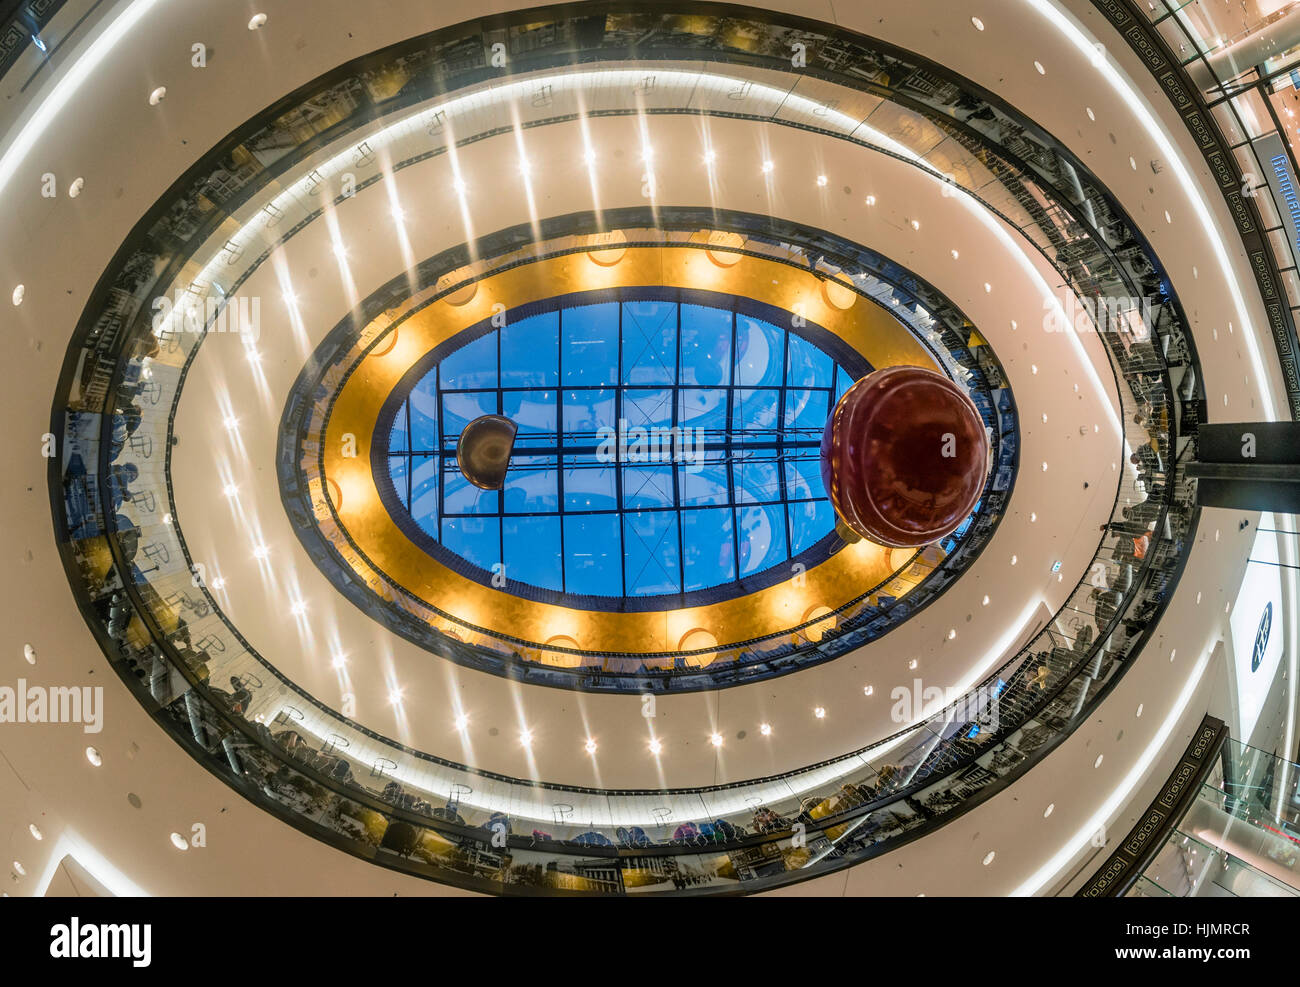 Le centre commercial de Berlin, plafond, Atrium, l'architecture moderne, Interieur, Shopping, Berlin Photo Stock